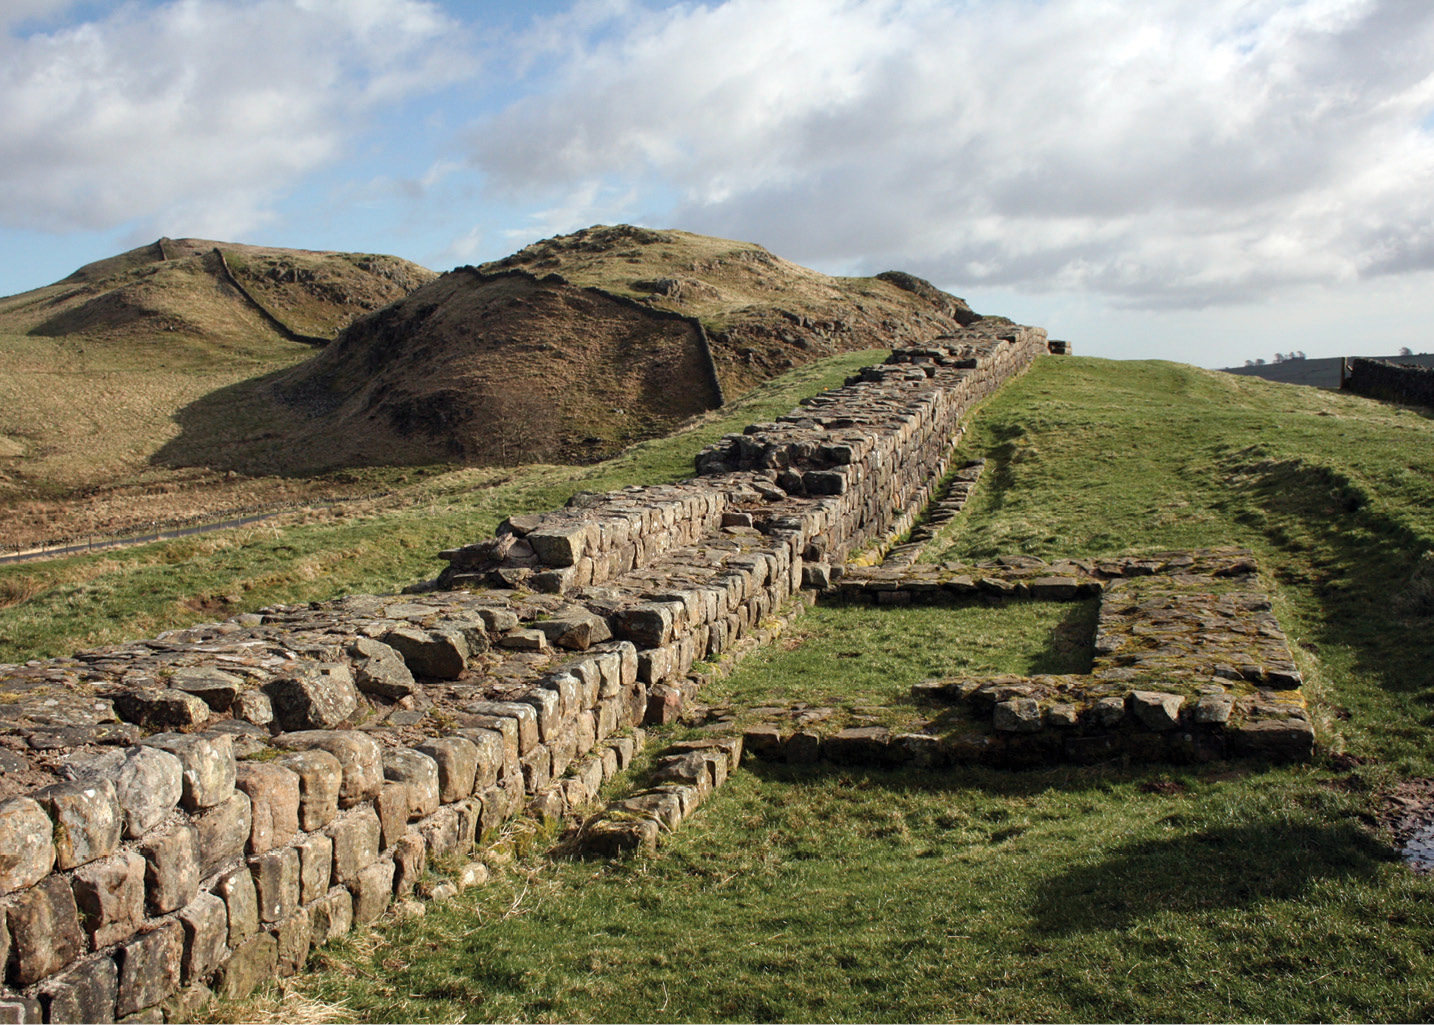 below Turret 41a on Hadrian's Wall. Could this frontier system have been designed as a component of a counterinsurgency strategy?